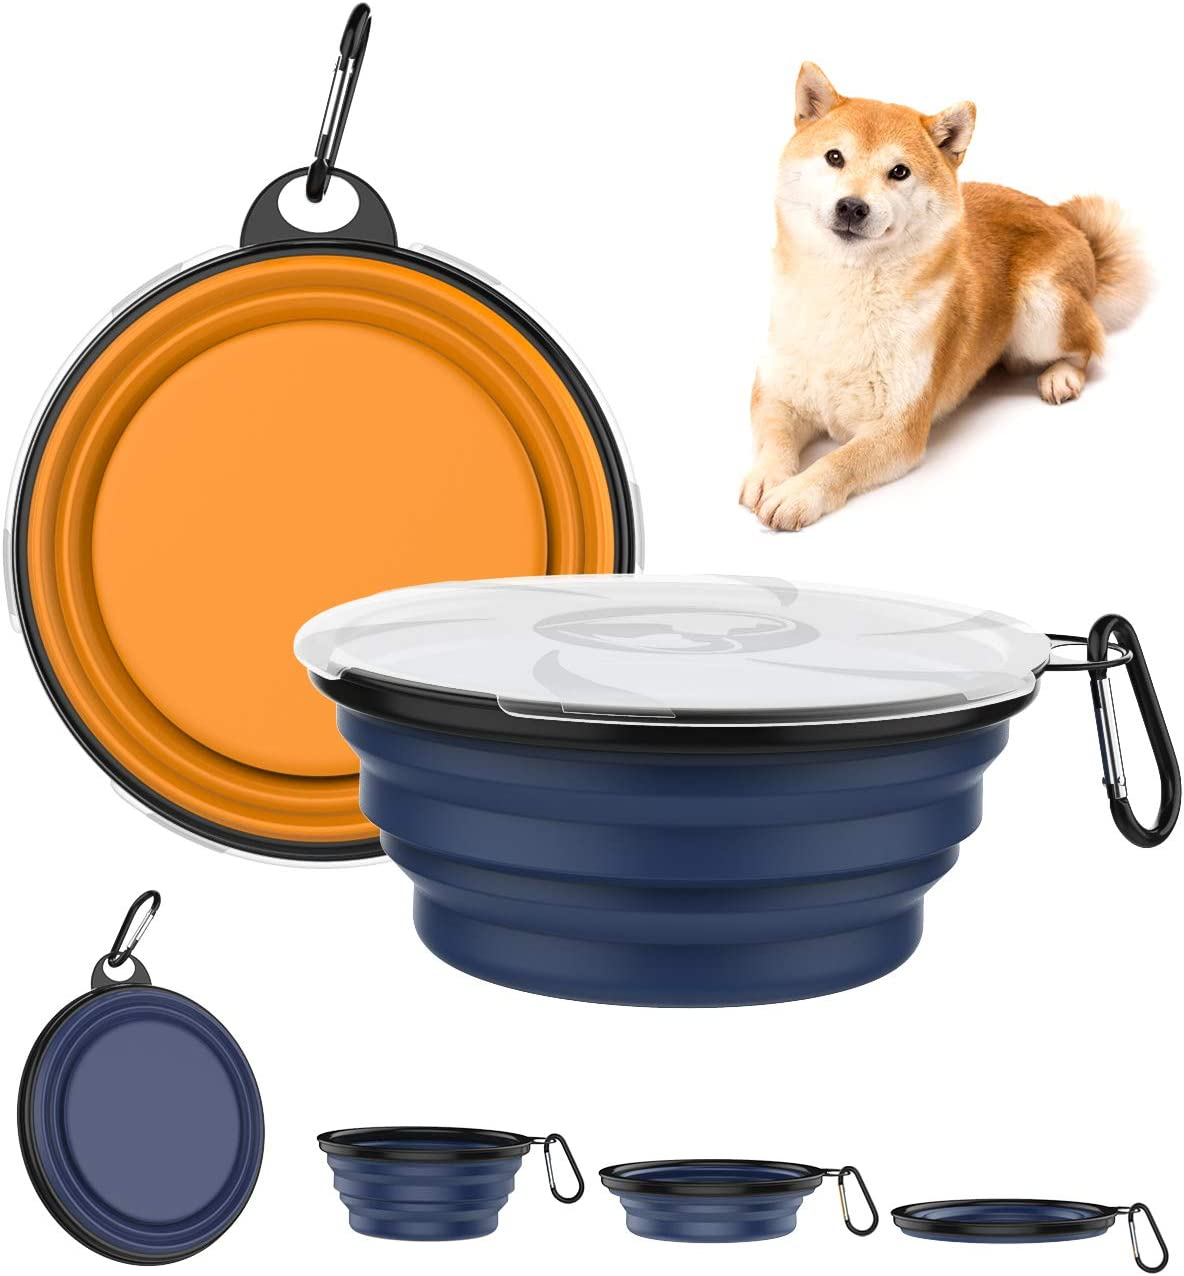 Lewondr Collapsible Dog Bowls, [2 Packs] Silicone Food & Water Travel Bowl Portable Dog Cat Bowls with Lids Expandable Pet Feeding Watering Cup Dish for Walking, Kennels & Camping